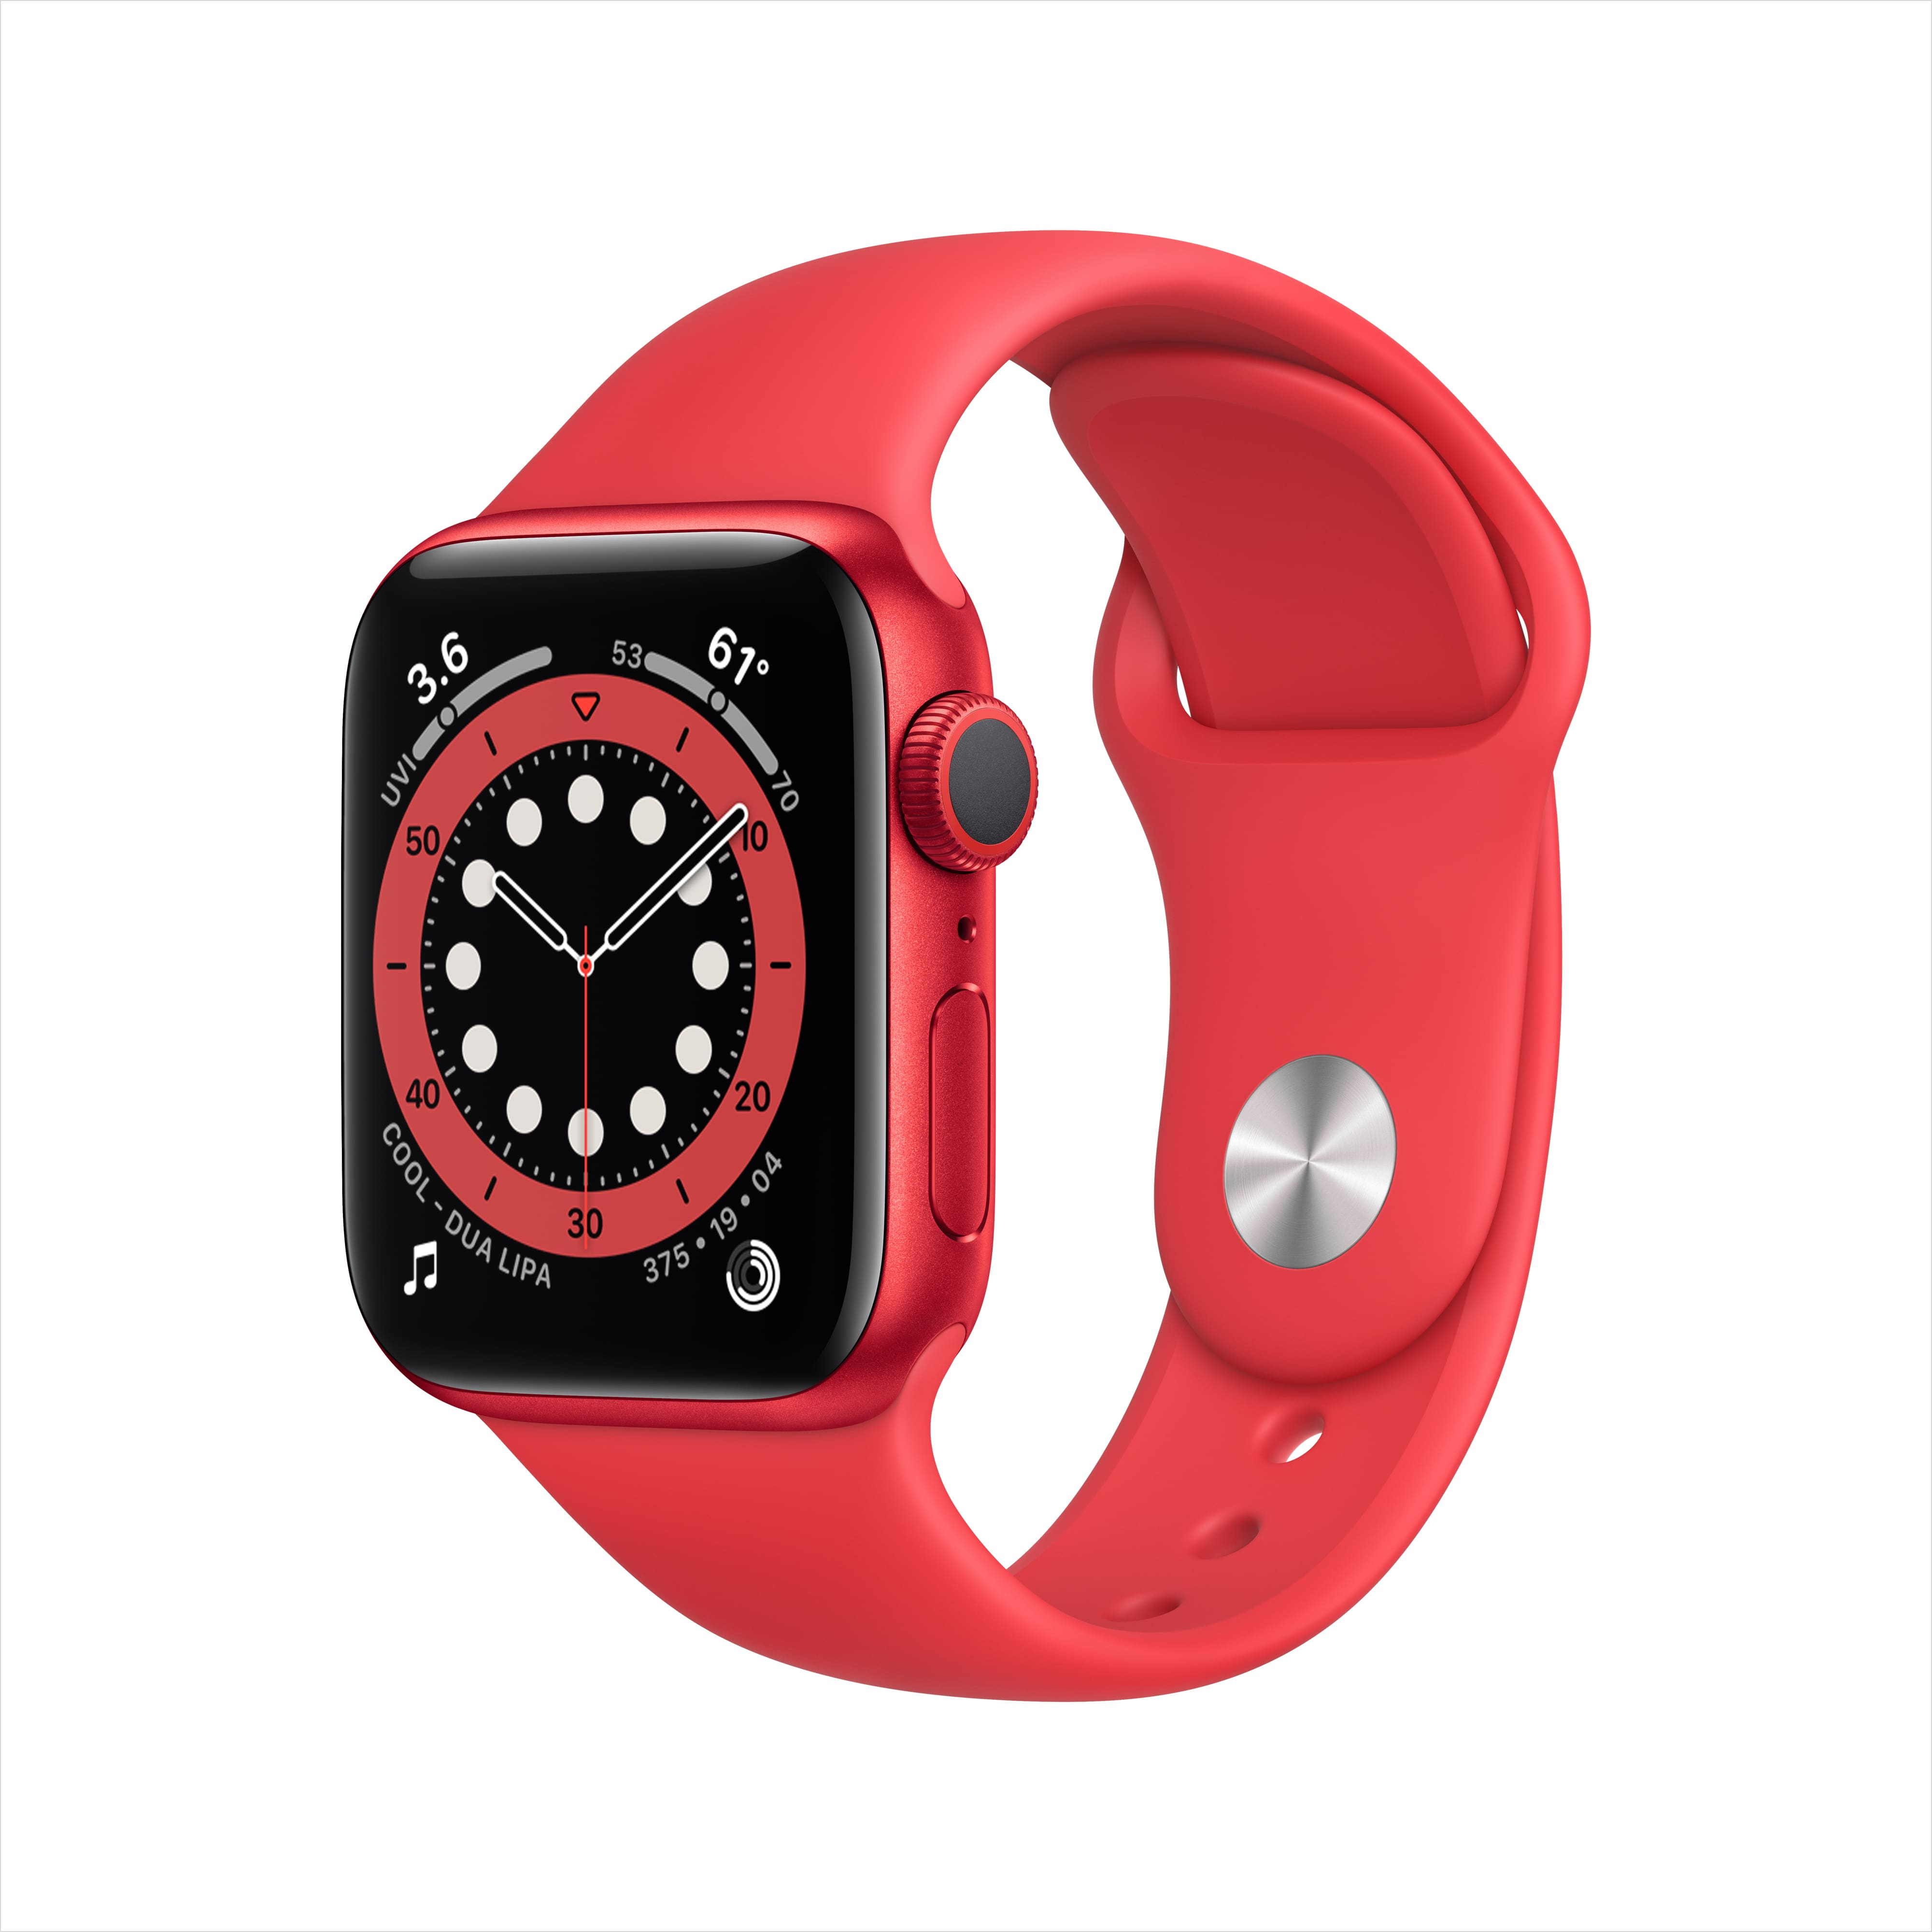 Apple Watch Series 6 40mm GPS Smartwatch (Product Red) - Walmart and Amazon - $339 + Free Shipping